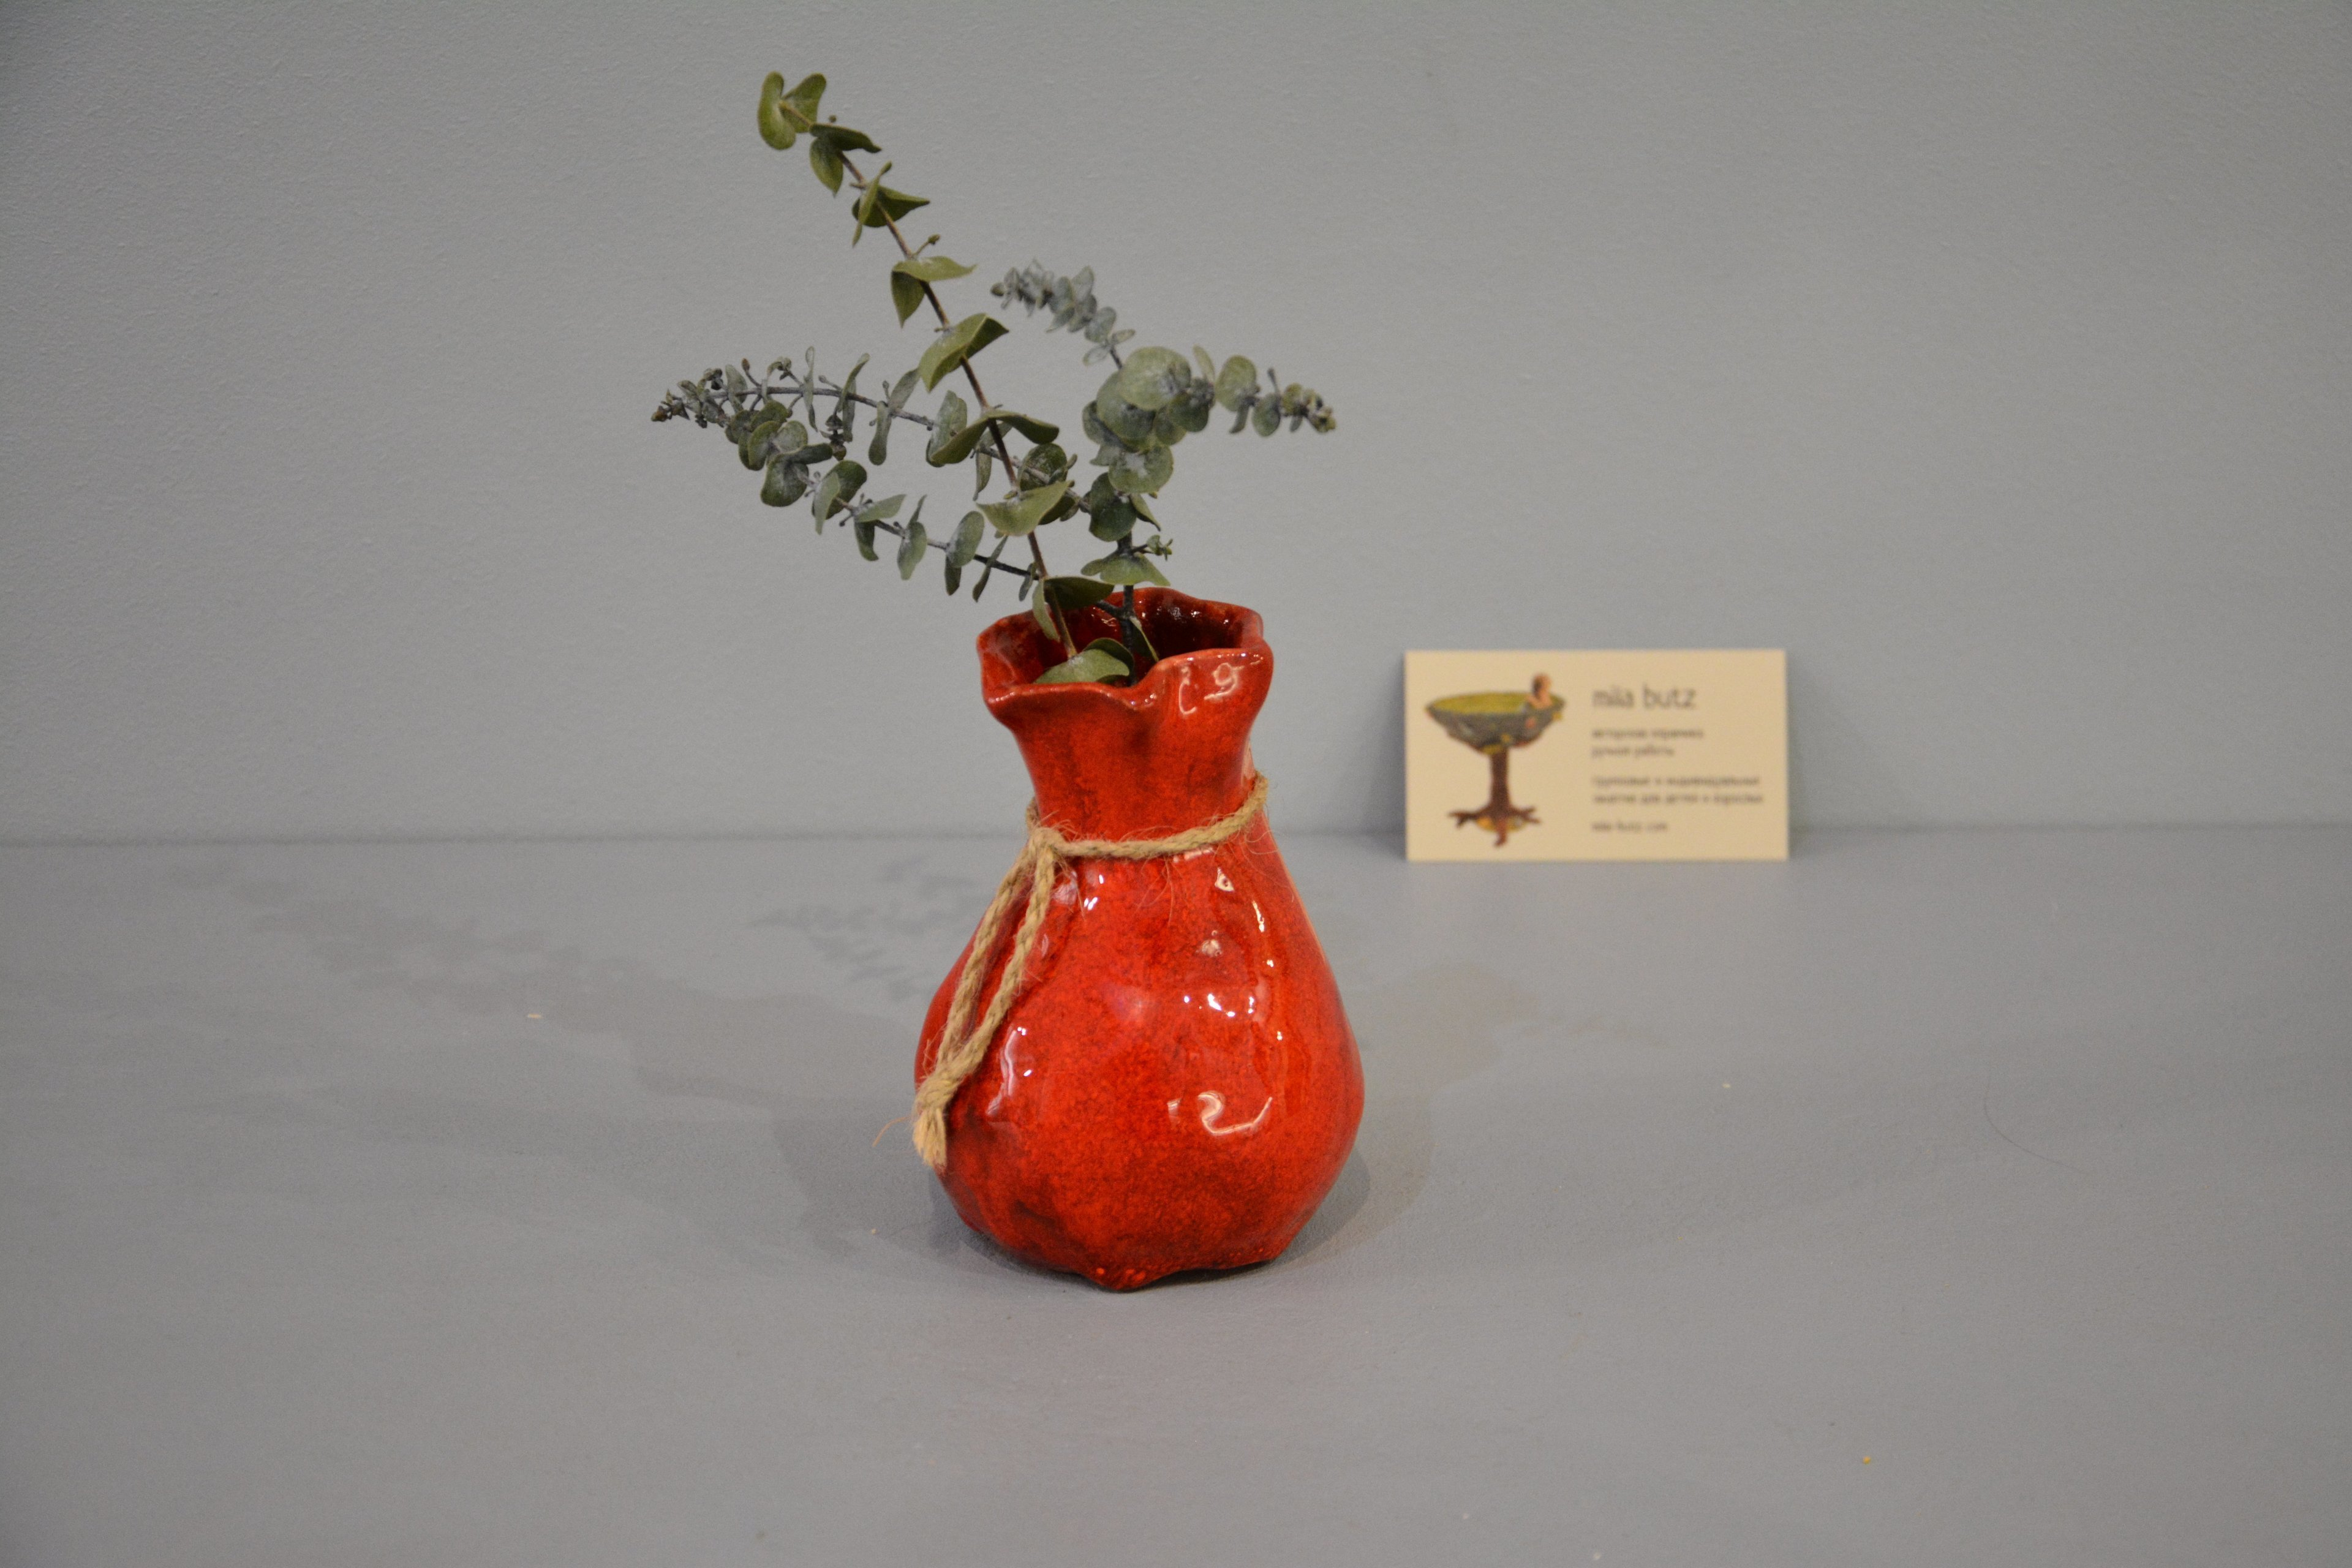 Interior vase «Red Bagful», height - 12 cm, color - red. Photo 1434.